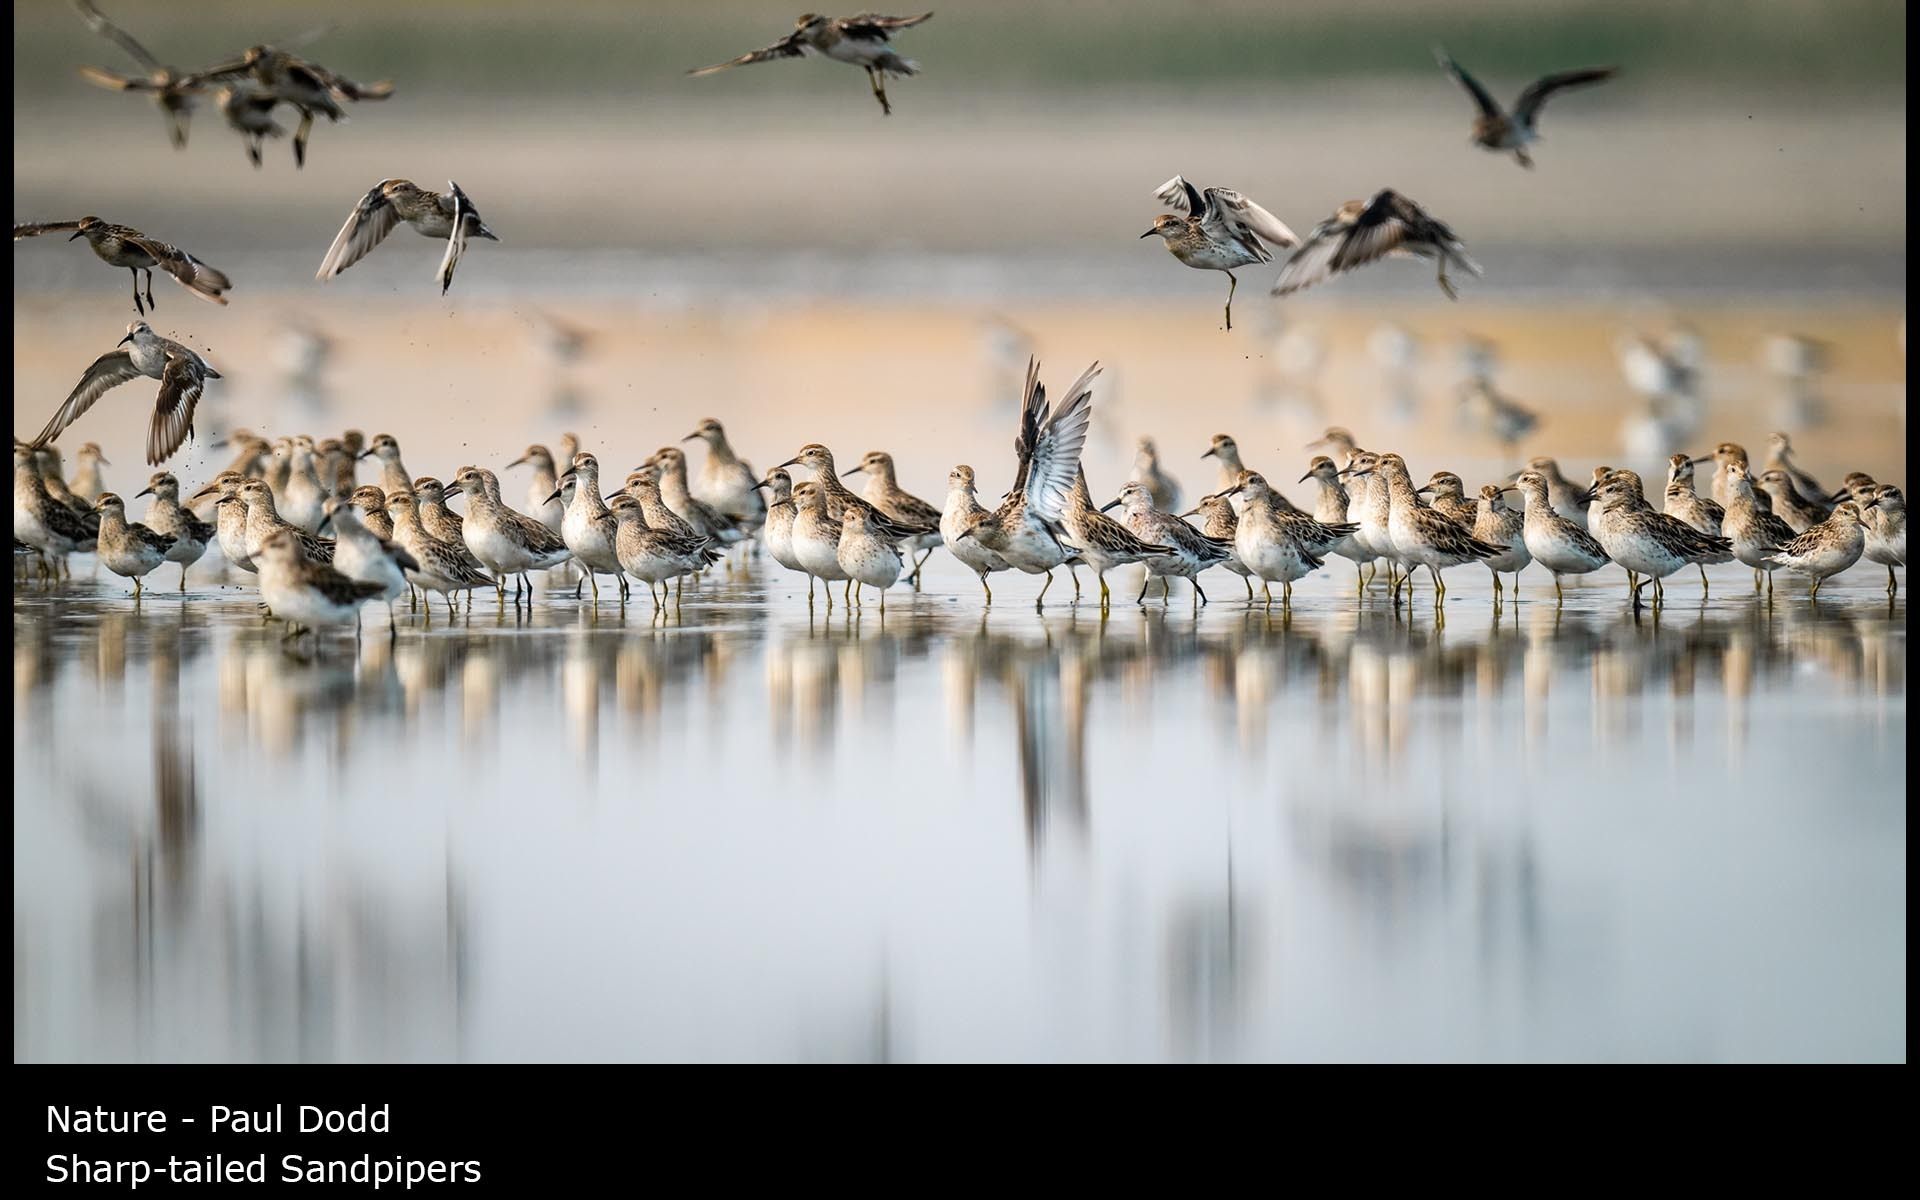 Sharp-tailed Sandpipers - Paul Dodd